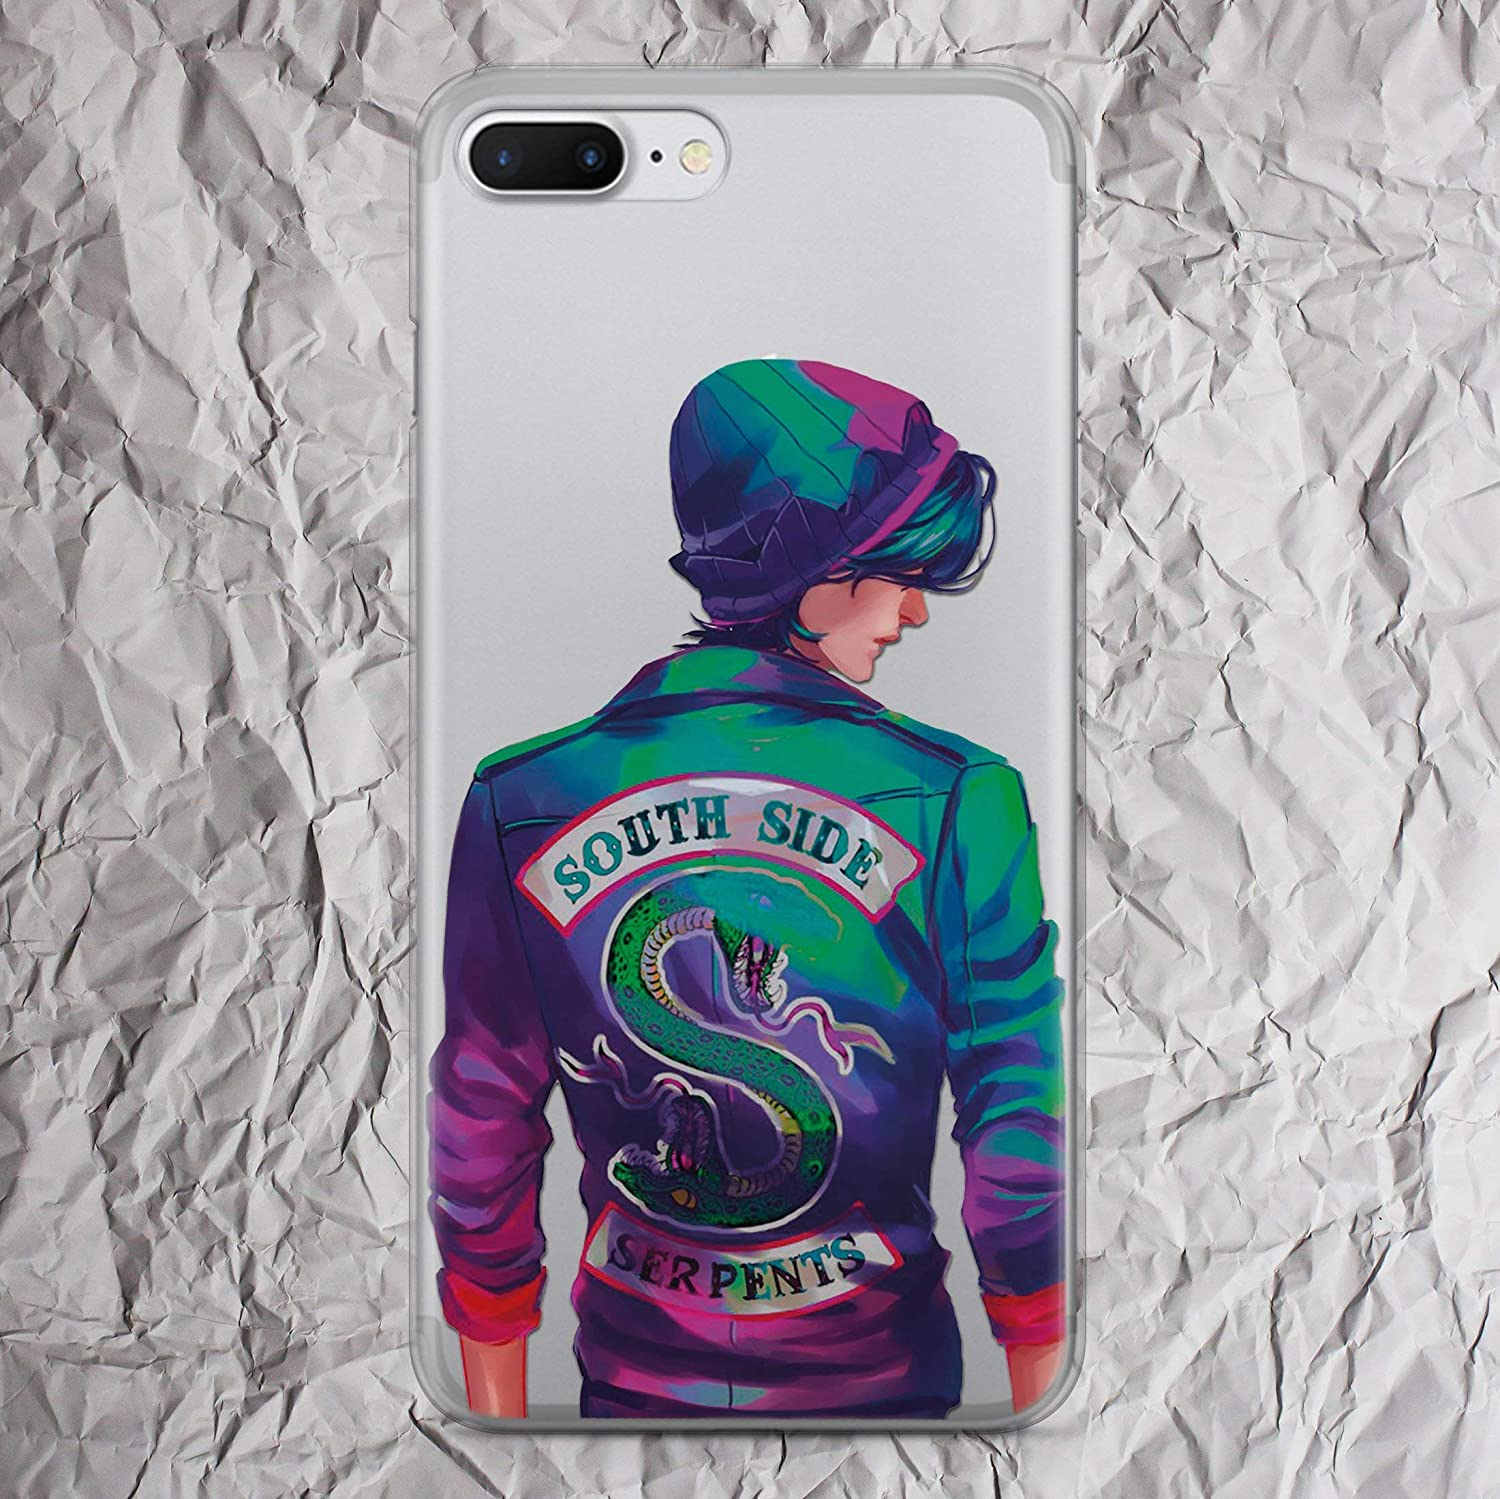 Riverdale Southside Serpents Jacket Shirt sweatshirt patch hoodie tshirt gifts print iPhone 7 8 6 6s plus X Xs Max Xr case for iphone 5 5s se 5se 4 4s clear silicone TPU cover